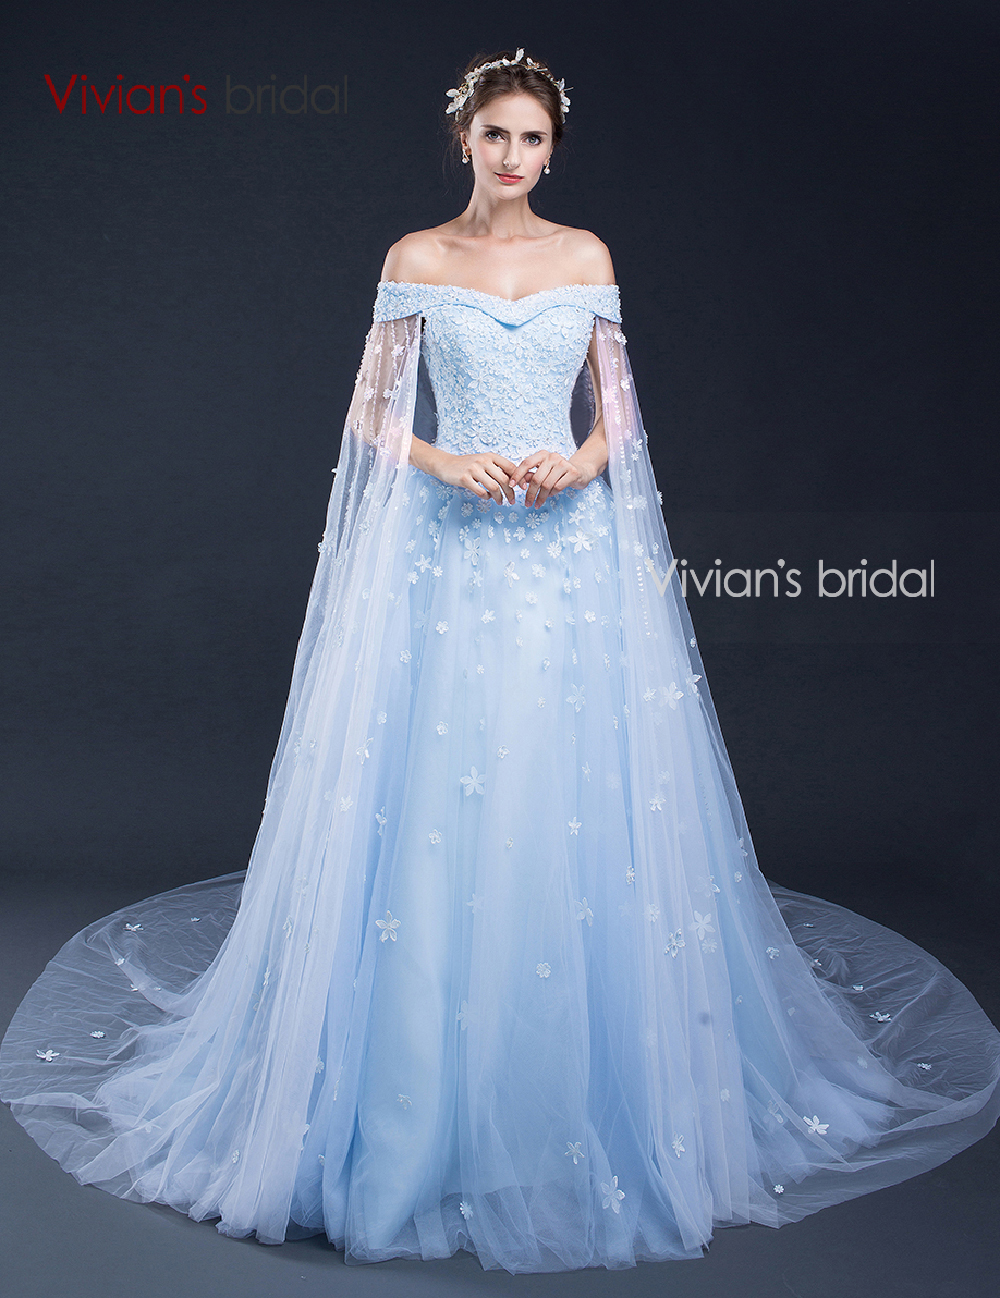 Vivian 39 s bridal blue wedding dress 2016 strapless flower for Blue lace wedding dress